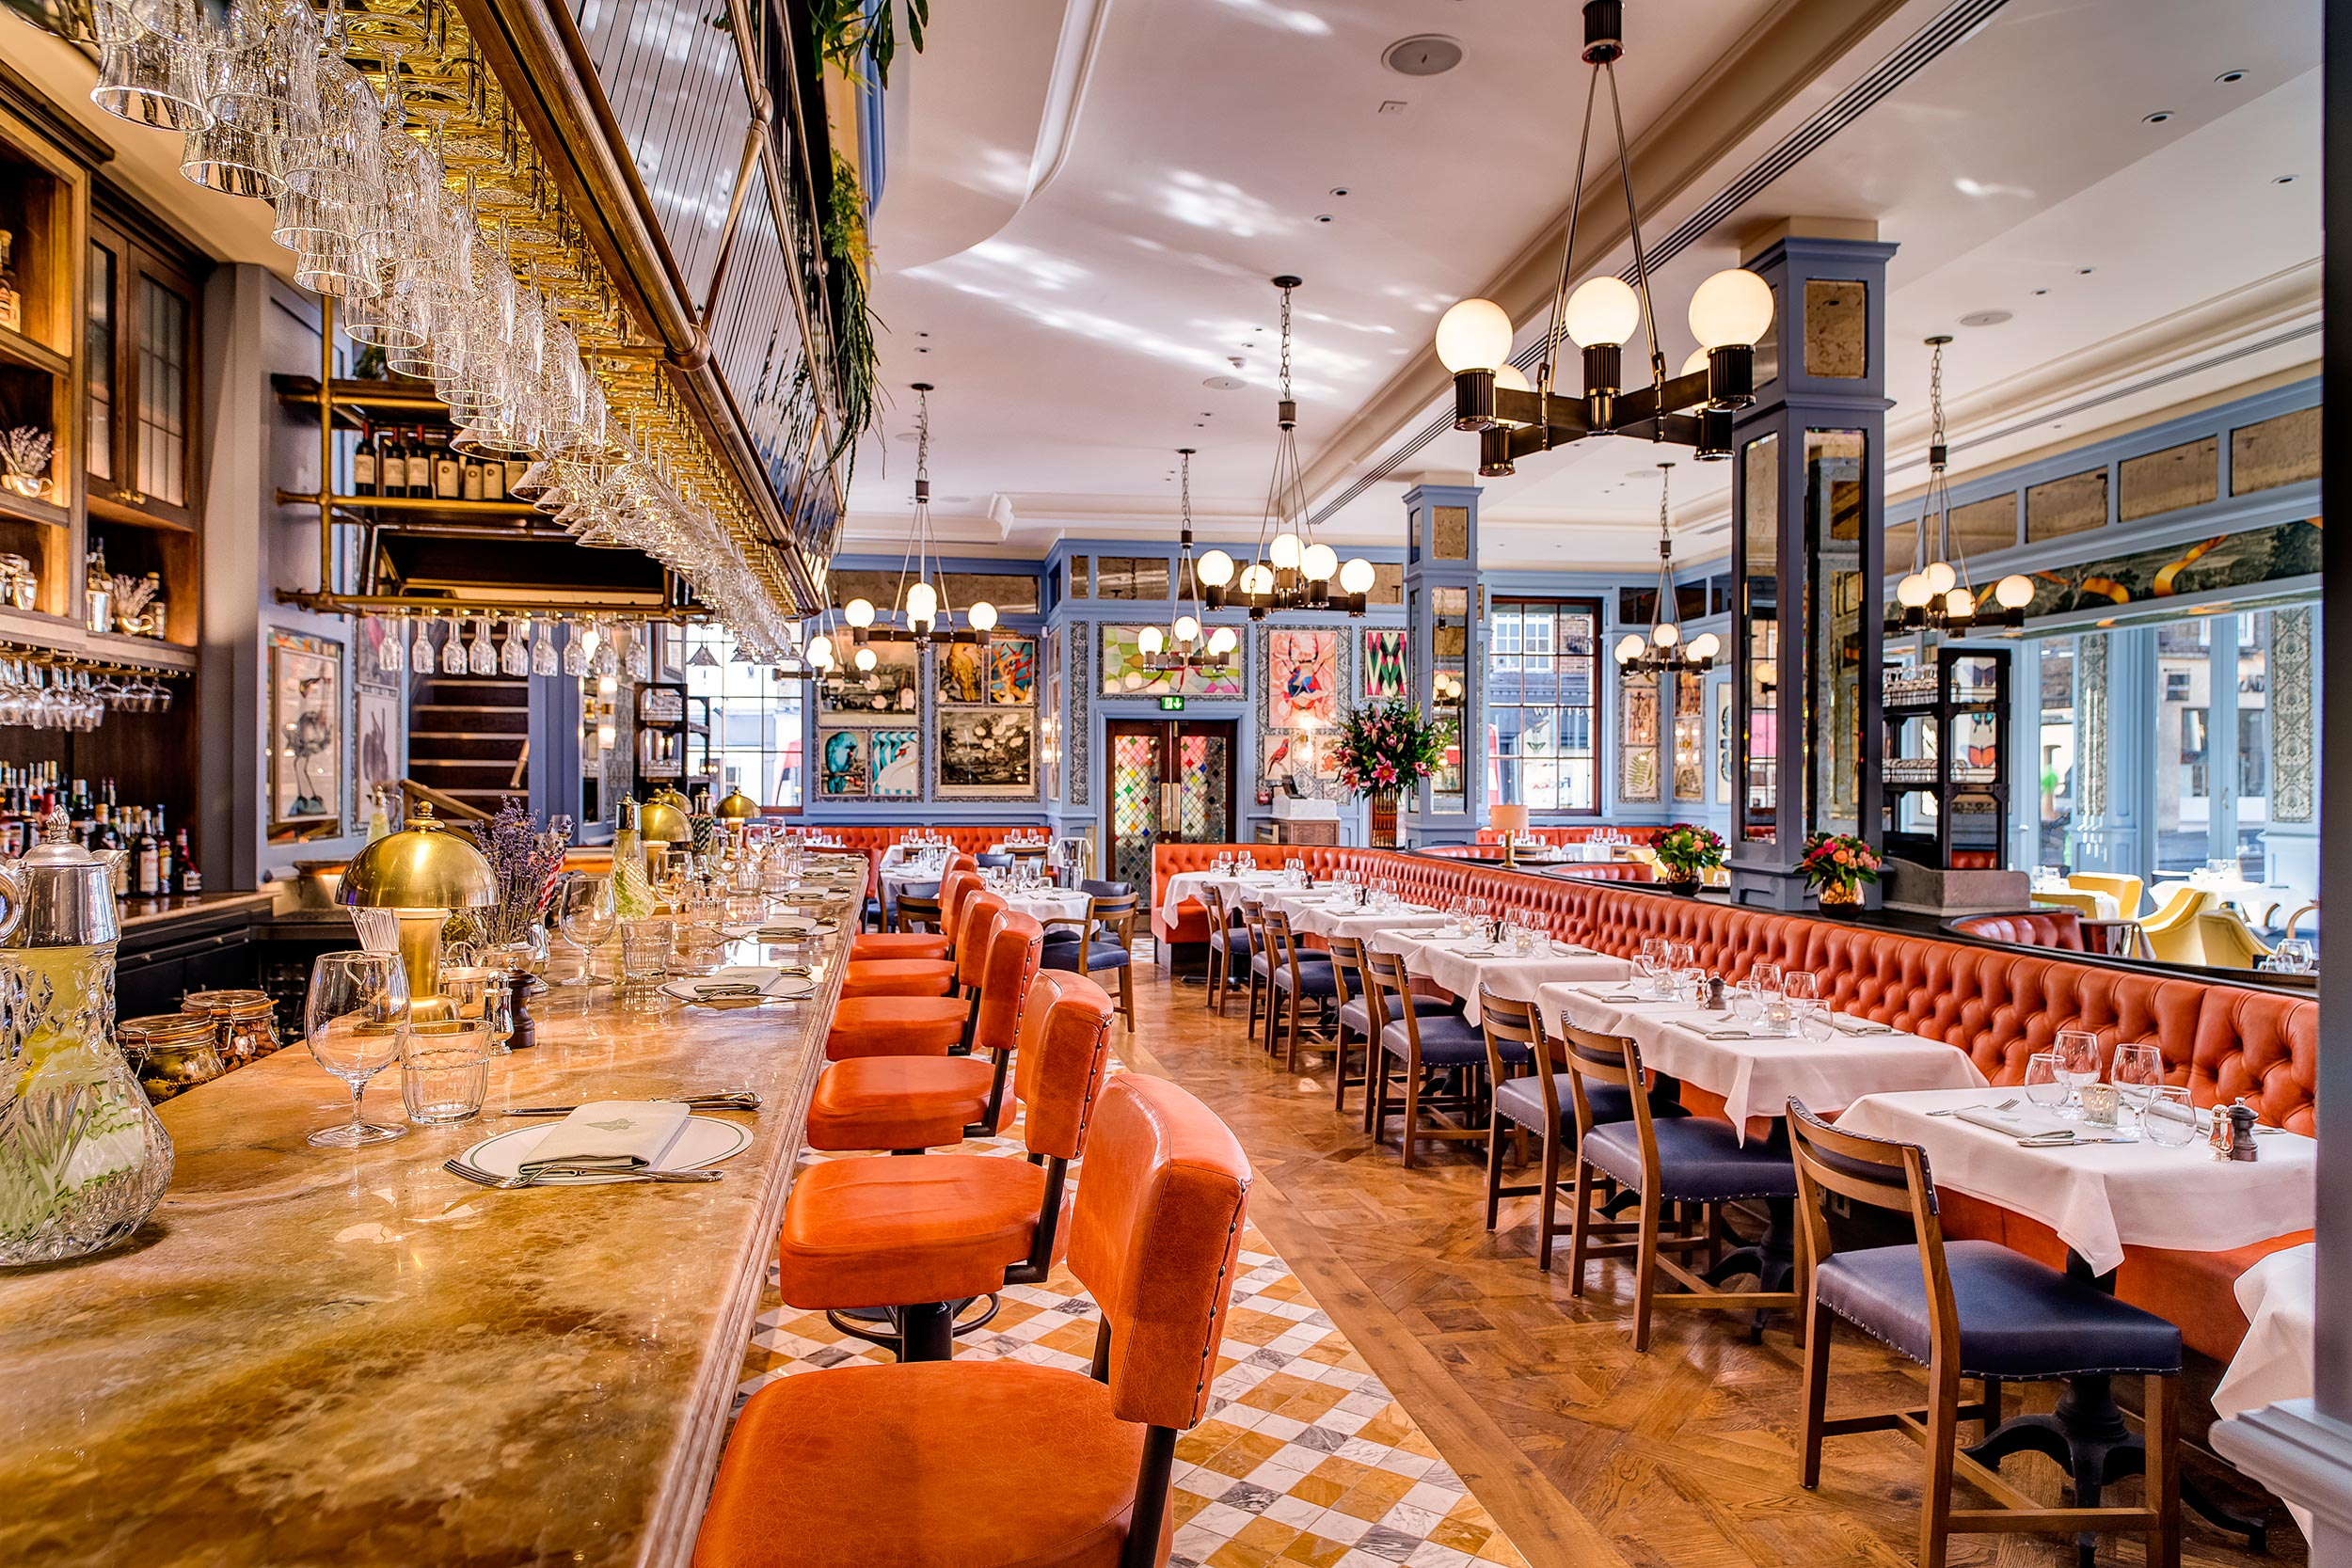 The Ivy Soho Brasserie: Where the cool crowd goes to eat at London Fashion Week